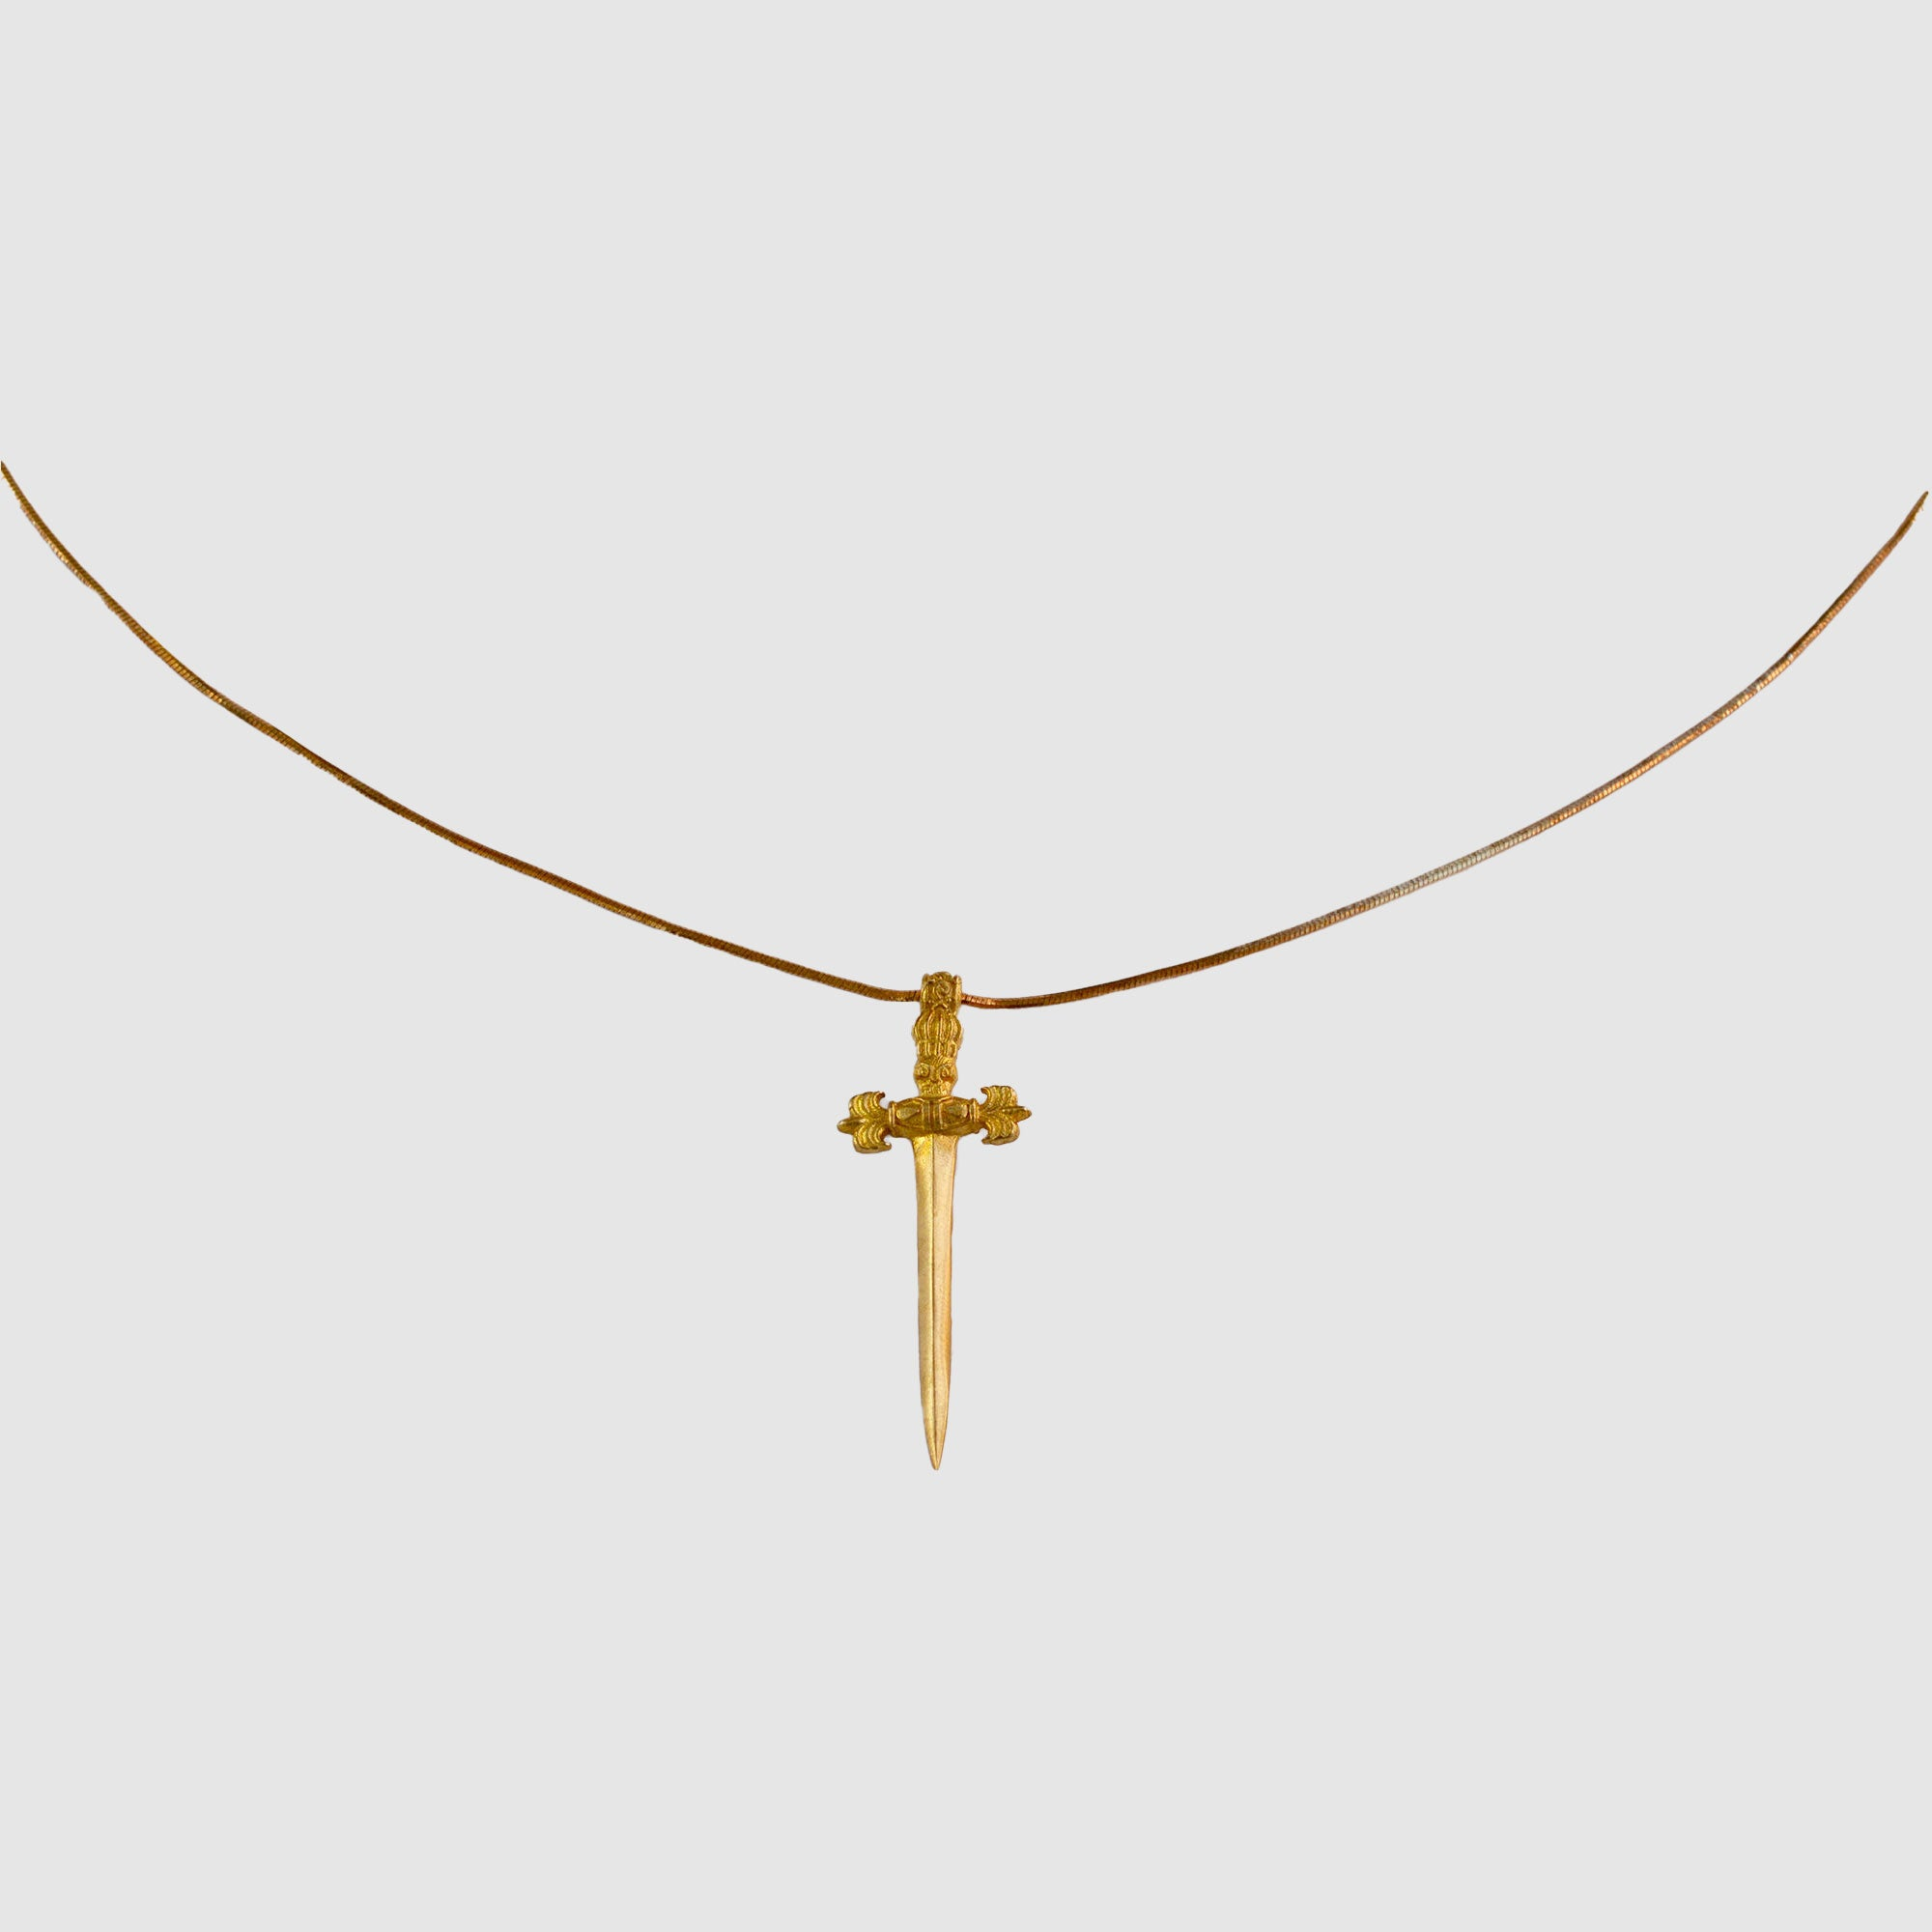 GREAT SUCCESS ADJUSTABLE LENGTH  NECKLACE // SWORD